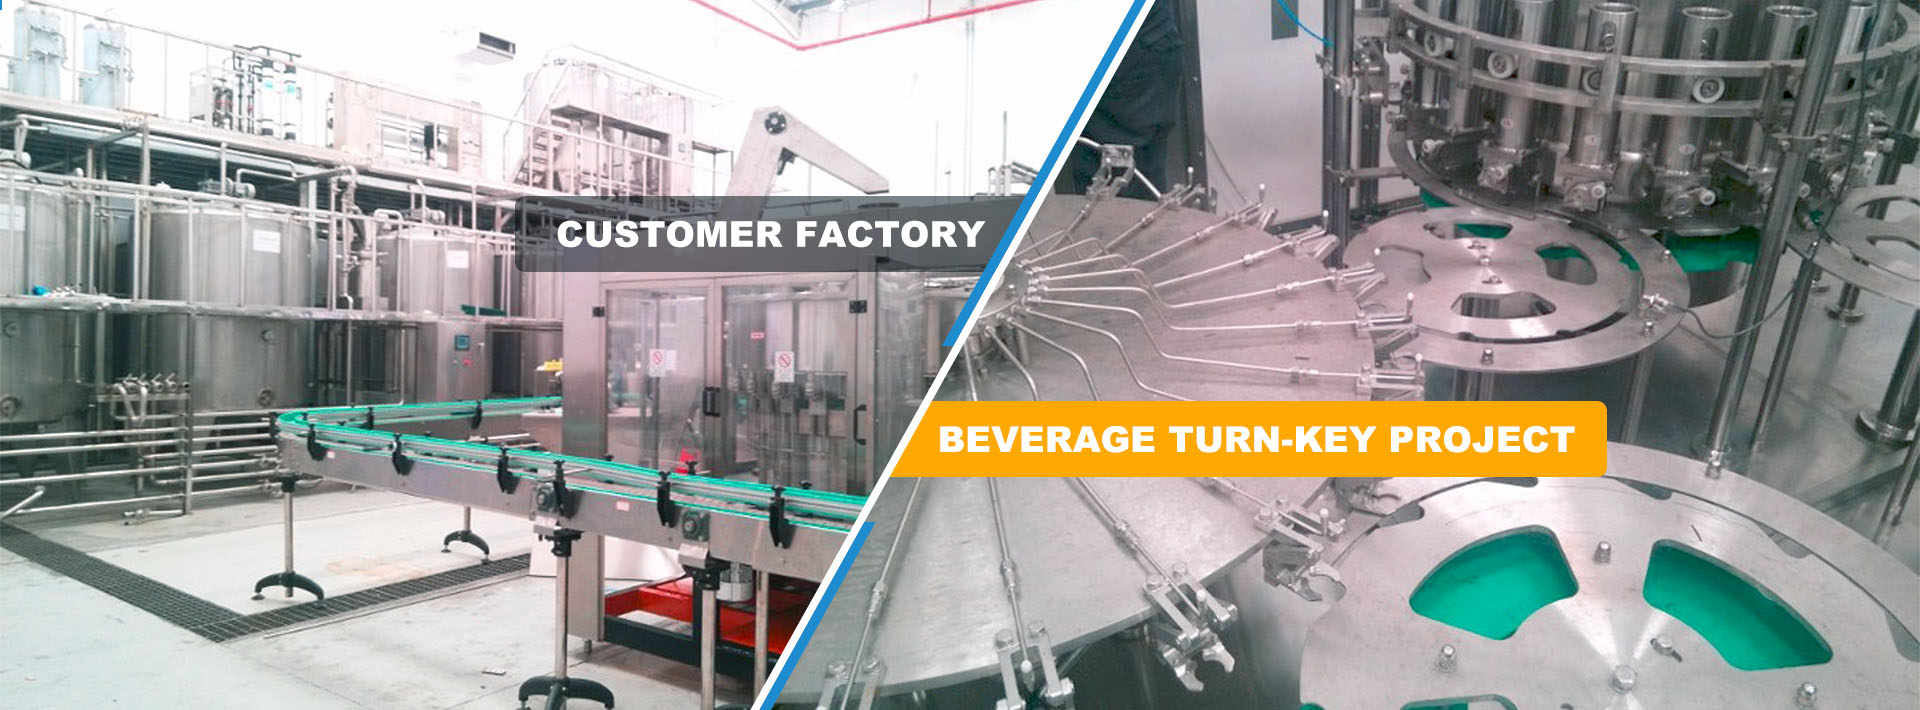 Customer Factory